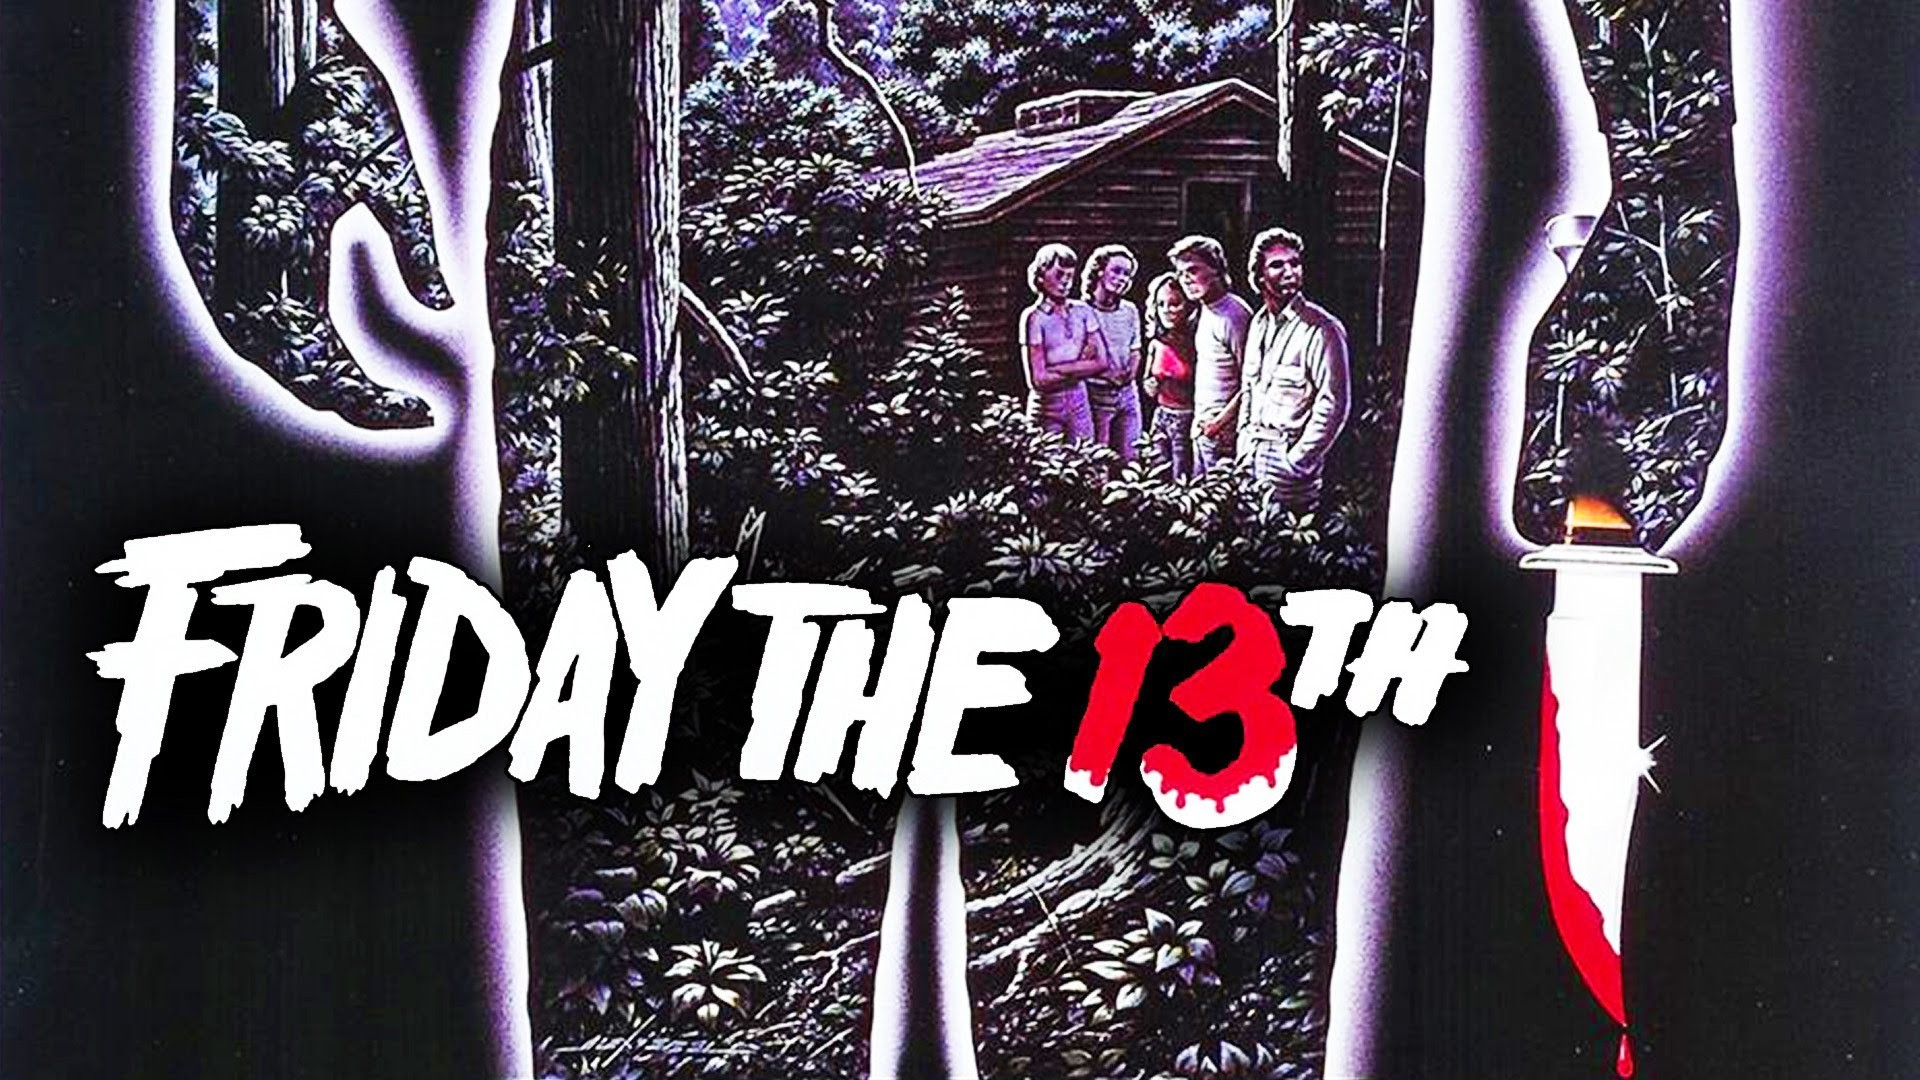 Res: 1920x1080, Nice Images Collection: Friday The 13th (1980) Desktop Wallpapers